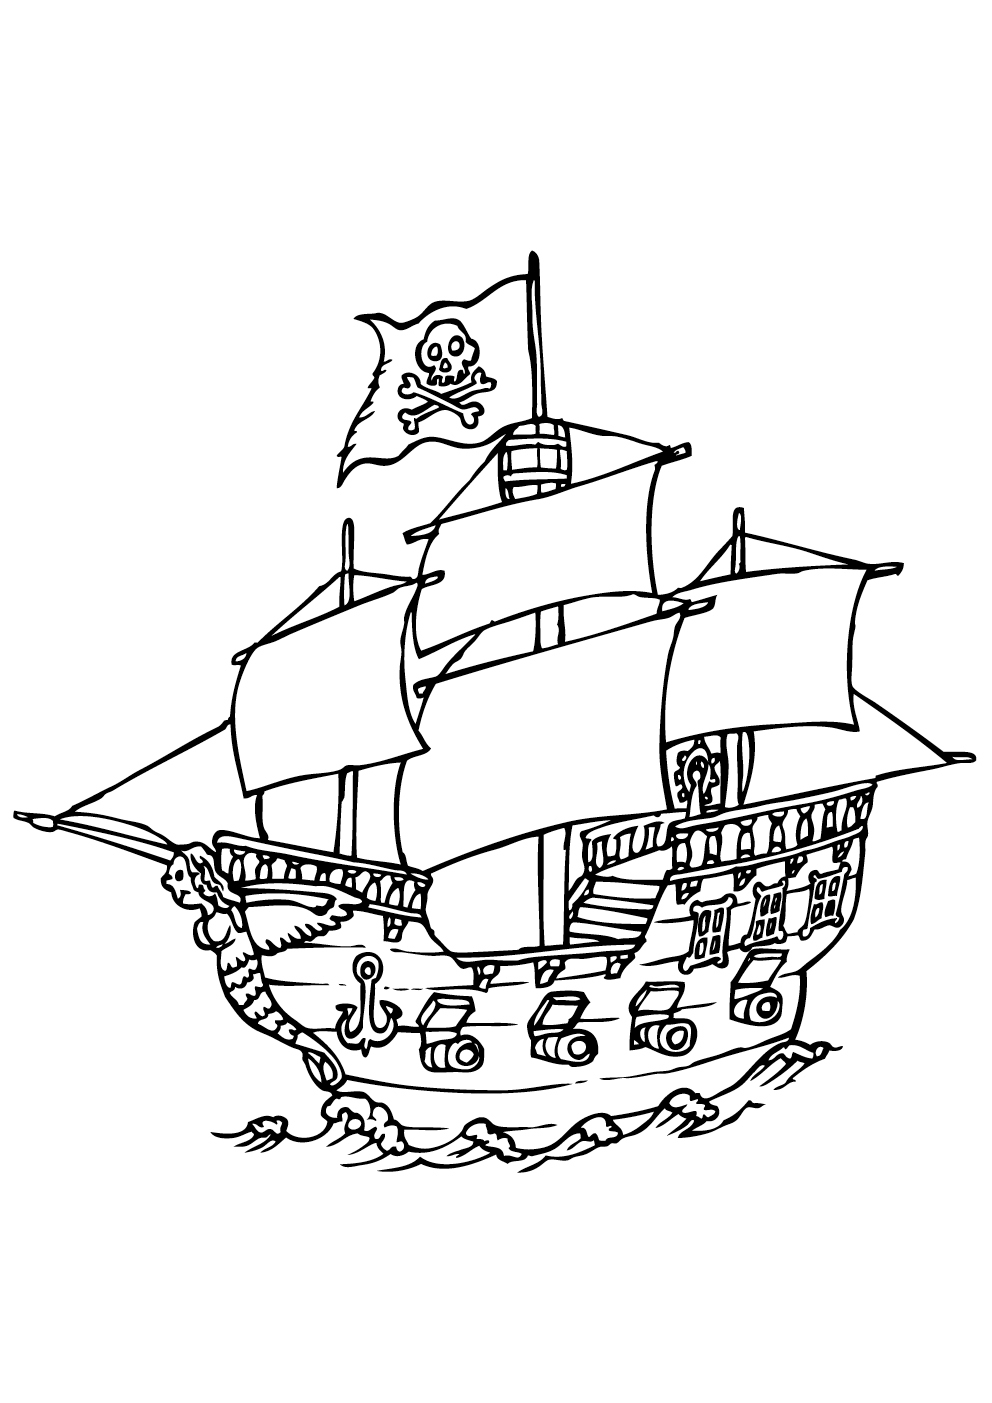 Pirate colouring pages to print - Big Pirate Boat With Jolly Roger Flag From The Gallery Kids Pirates Print